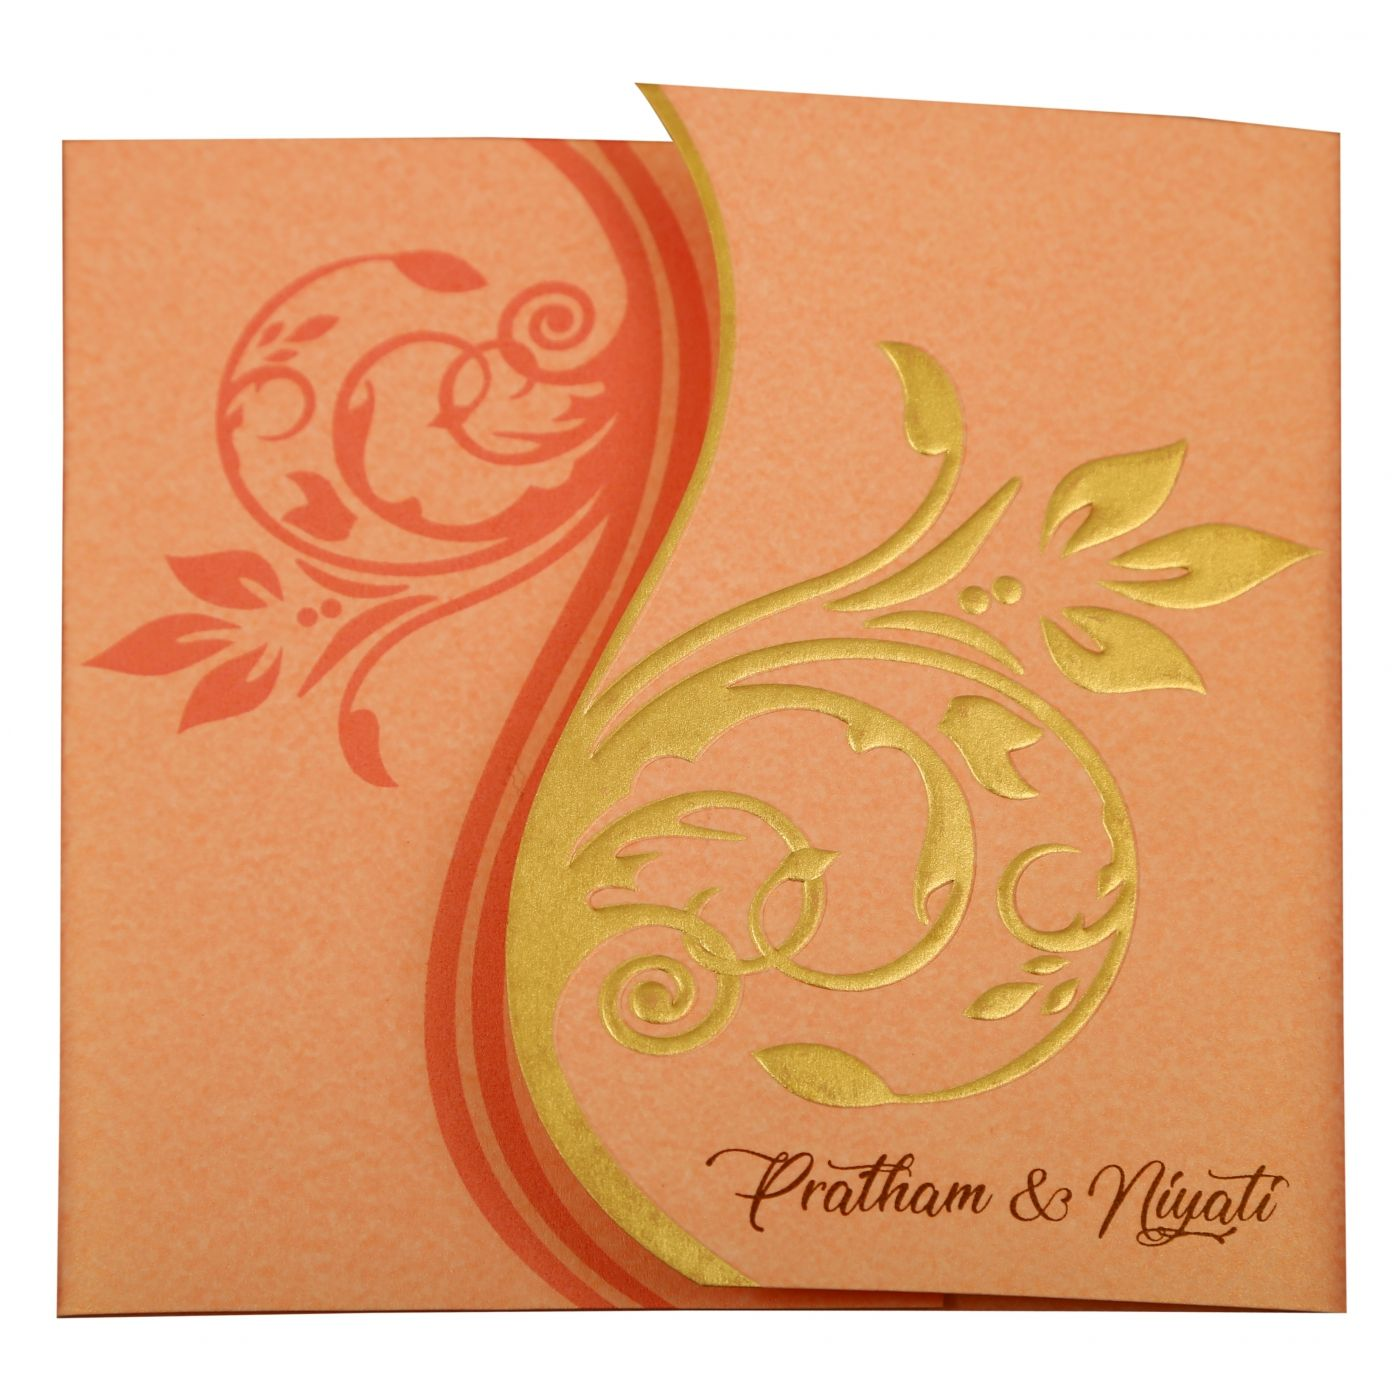 BABY PINK SHIMMERY FLORAL THEMED - EMBOSSED WEDDING INVITATION : CW-1900 - IndianWeddingCards